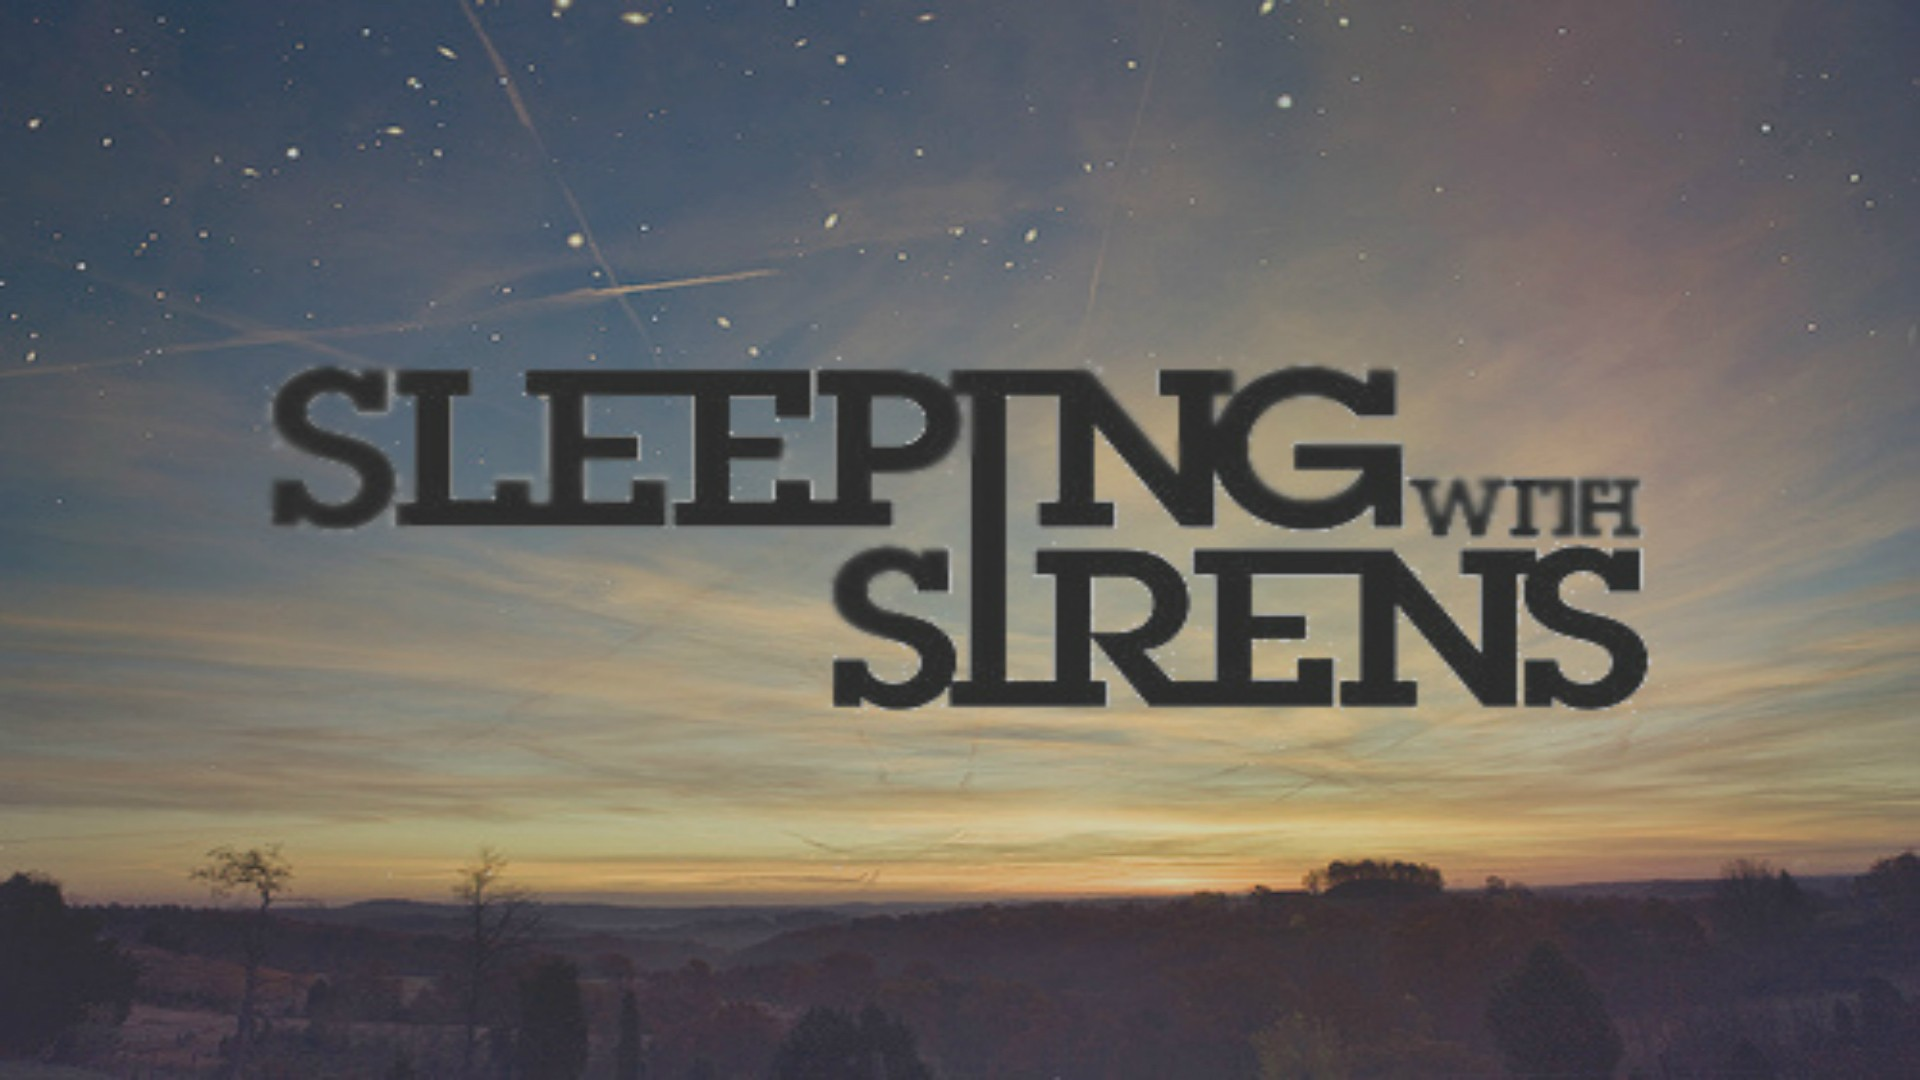 Sleeping With Sirens bands Sleeping With Sirens Desktop Wallpaper